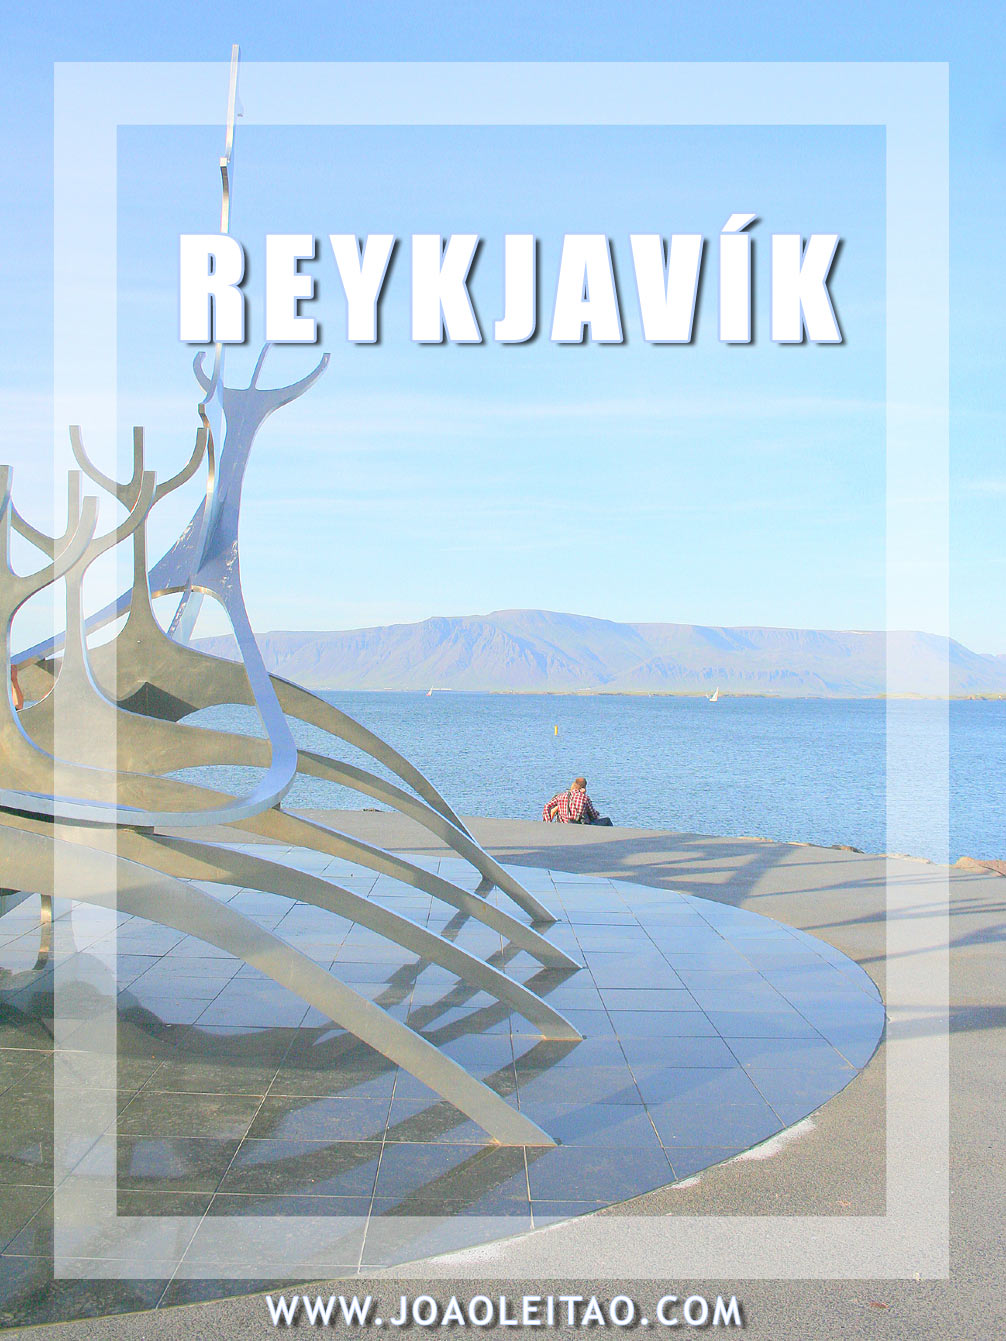 What to visit in Reykjavík the capital of Iceland